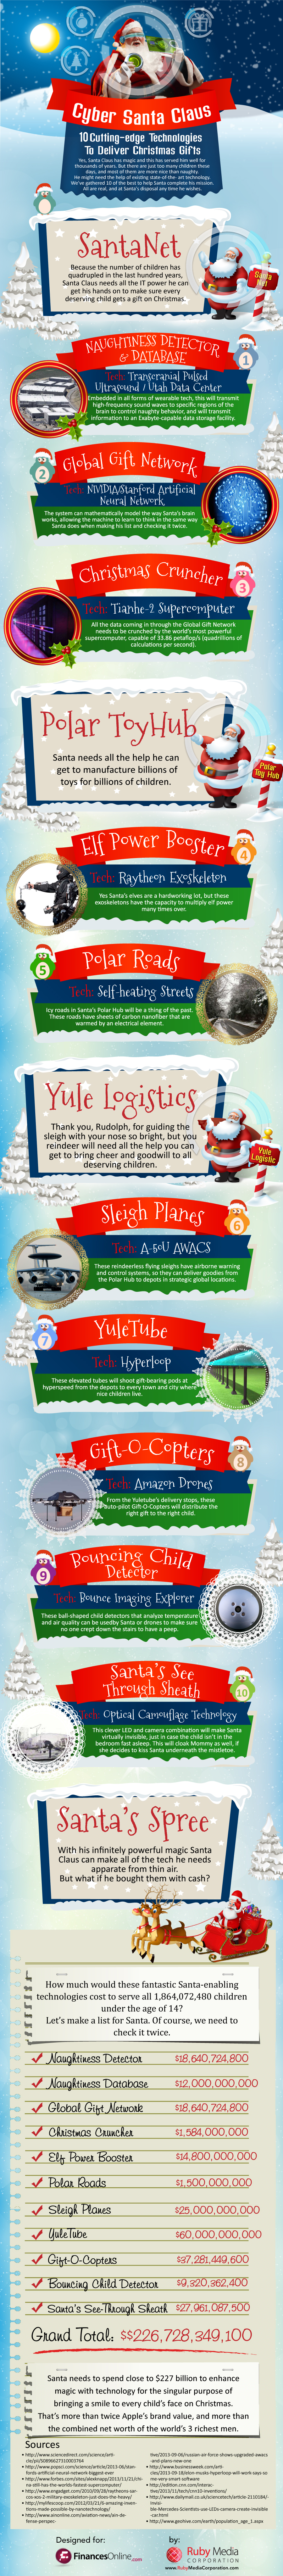 , 10 Cutting Edge Technologies to Help Santa Deliver Christmas Gifts Infographic